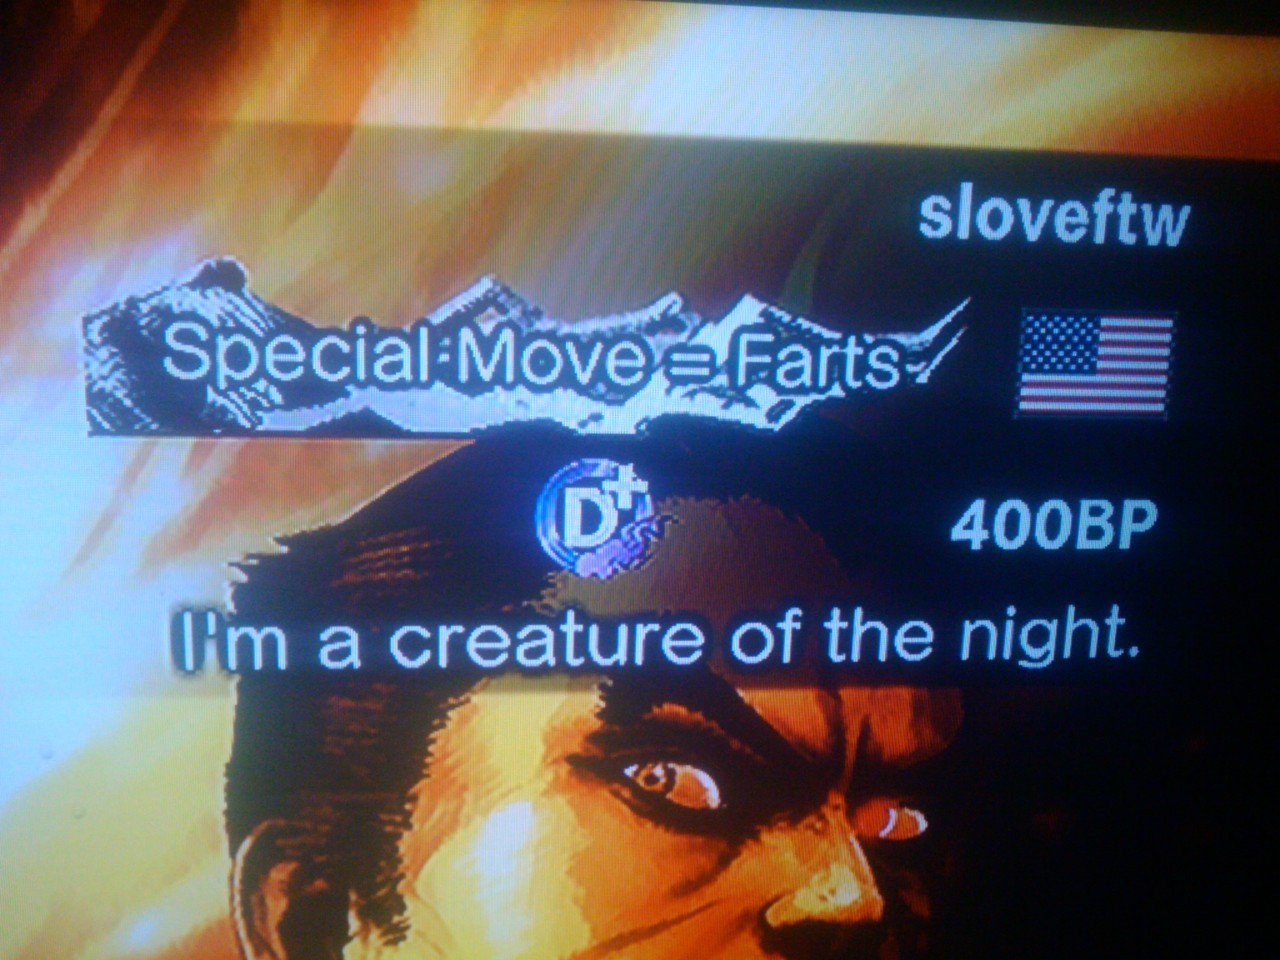 lol my title on street fighter x tekkeni got my BP up to a measly 1300 within a week of the game coming out but one night i was having really bad connection problems i guess and i kept getting kicked from games and losing hella BP and it's really discouraged me in playing this shit online or playing it in generalalso, the first part of my screen name is pronounced S and then Love as two seperate parts not sloveit's a play on my name which is sean lovett isn't that cute???